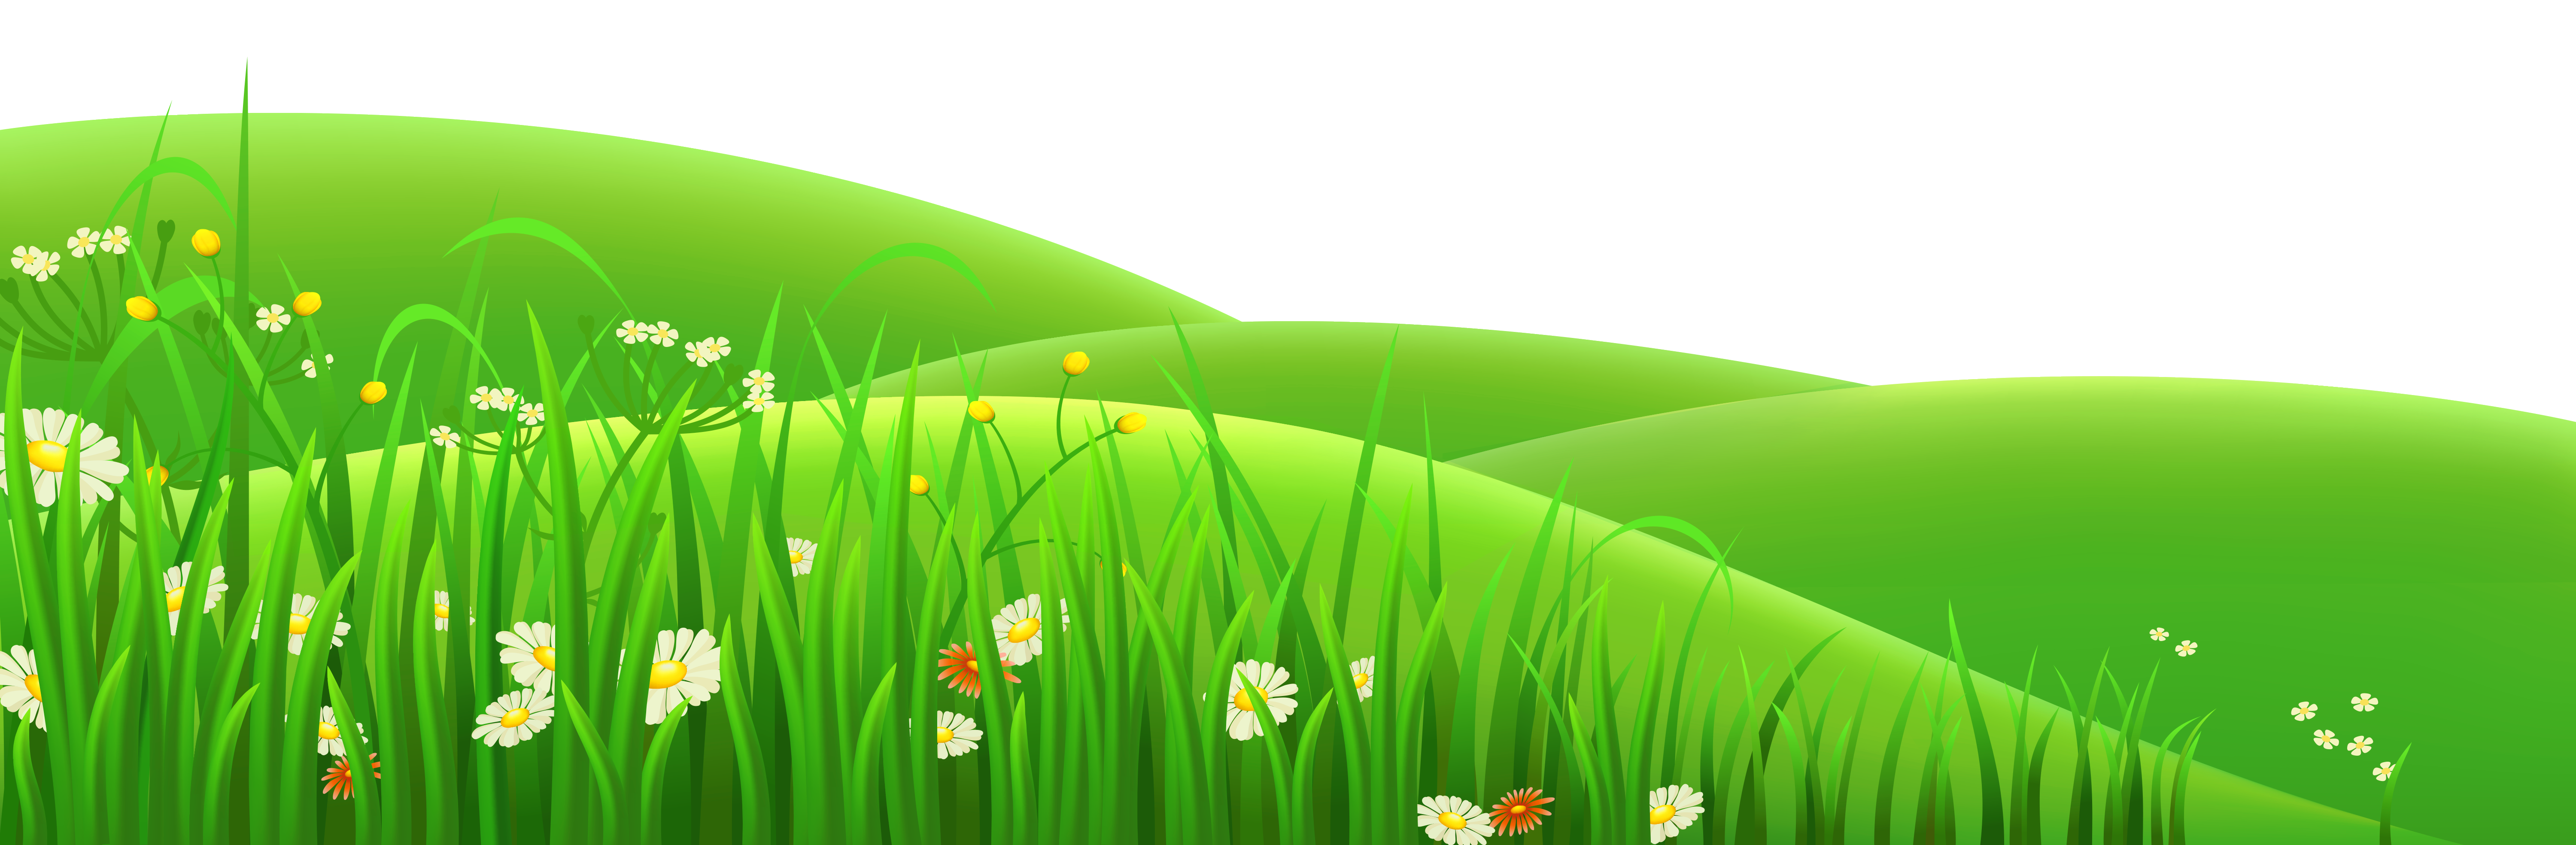 Grassy background clipart clip art black and white stock Transparent Flowers and Grass PNG Clipart | Gallery Yopriceville ... clip art black and white stock